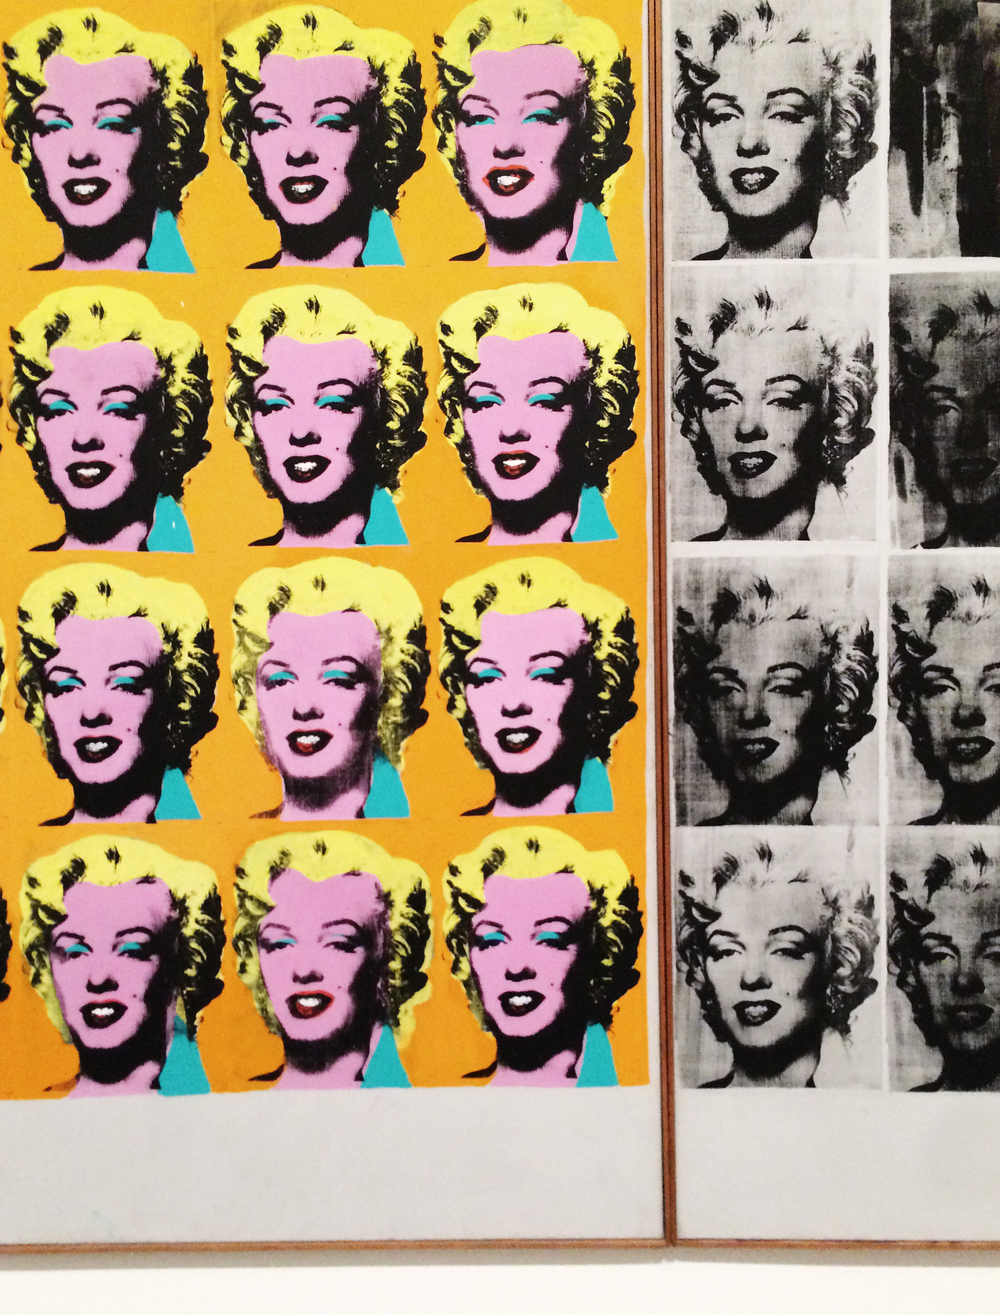 Andy Warhol, Marilyn Diptych, 1962. Tate Modern Museum. Photo by Sabina Radeva 2015.